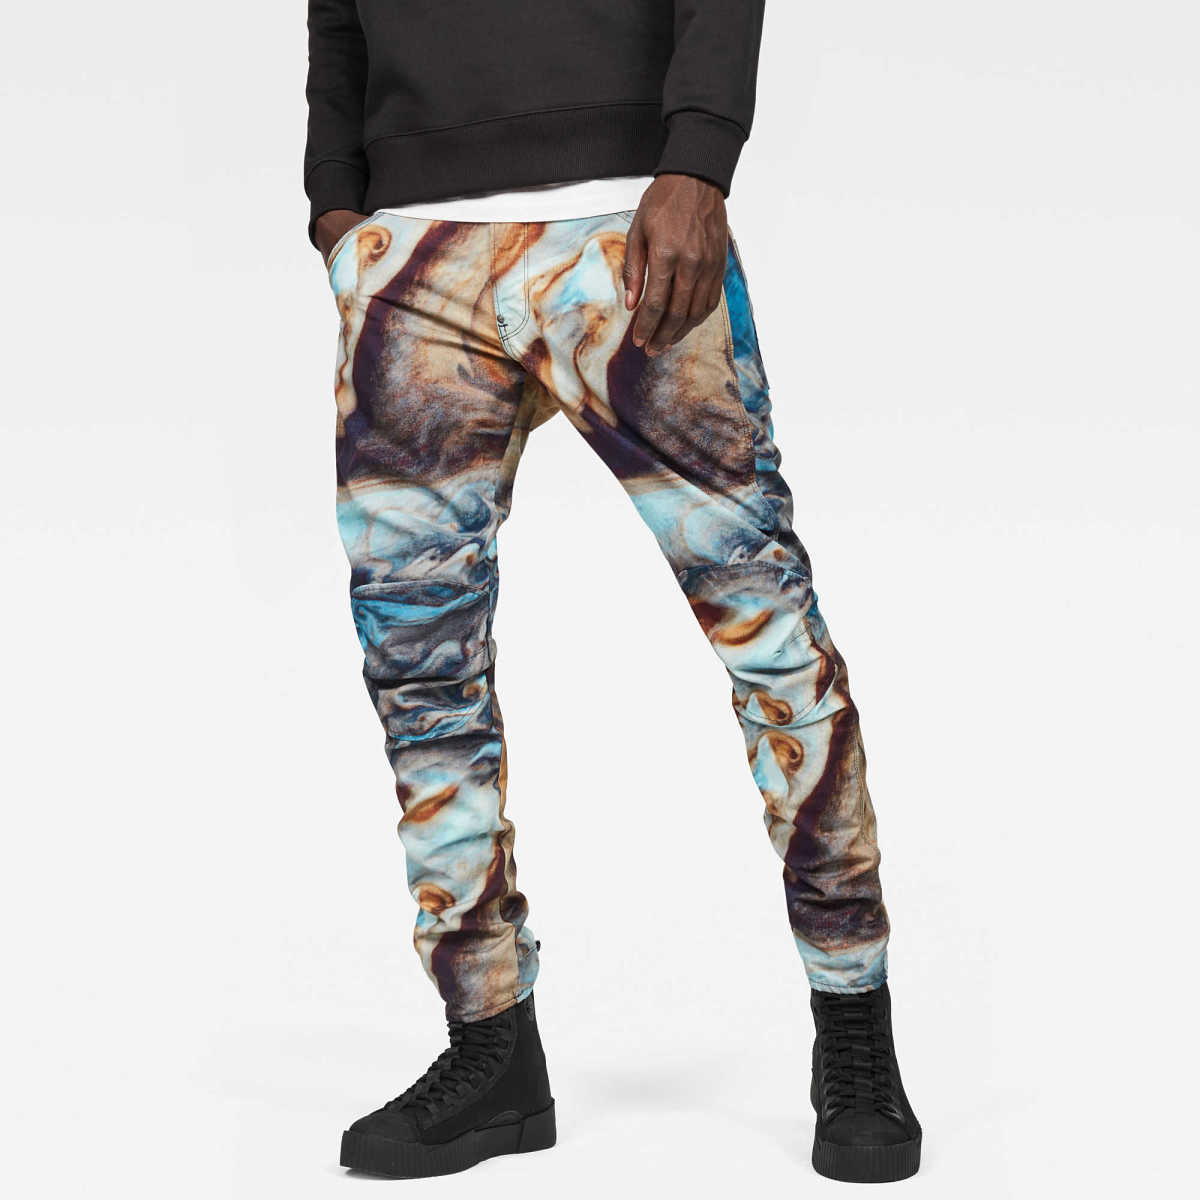 G-Star Male 5622 G-Star Elwood 3d Tapered Color Jeans Tapered Light Blue USA - GOOFASH - Mens JEANS